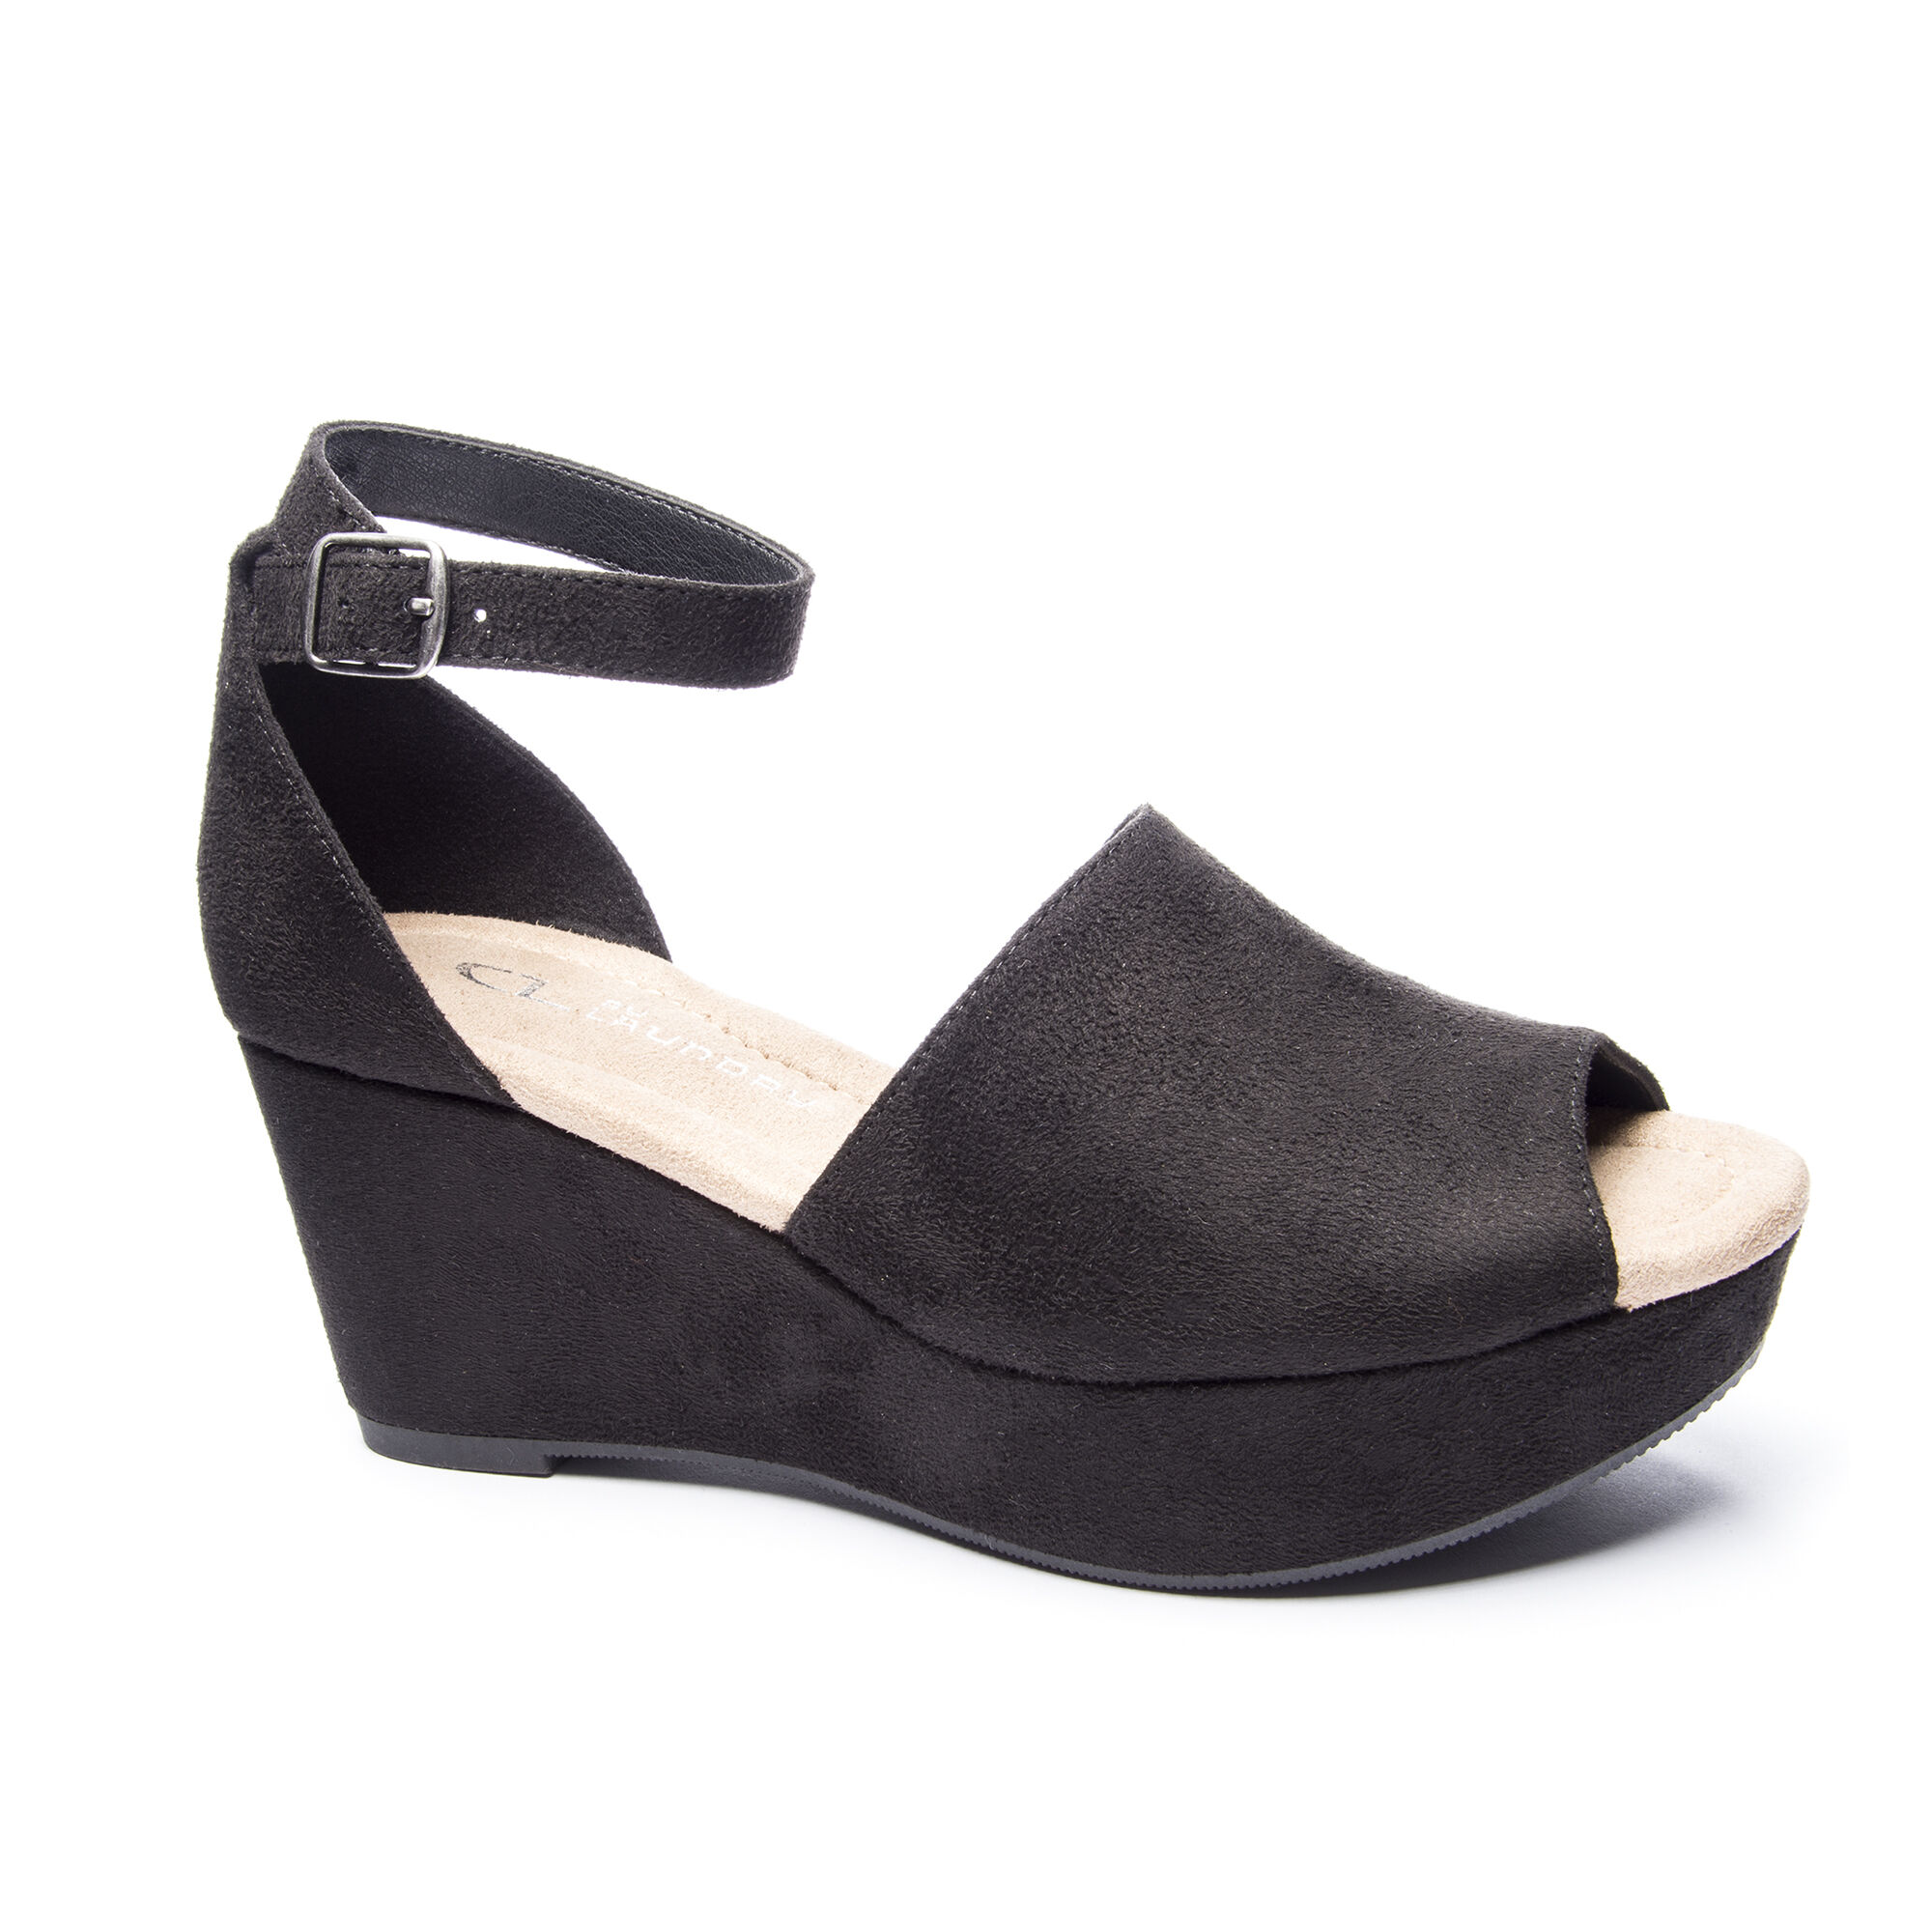 CL by Laundry Dara Wedge